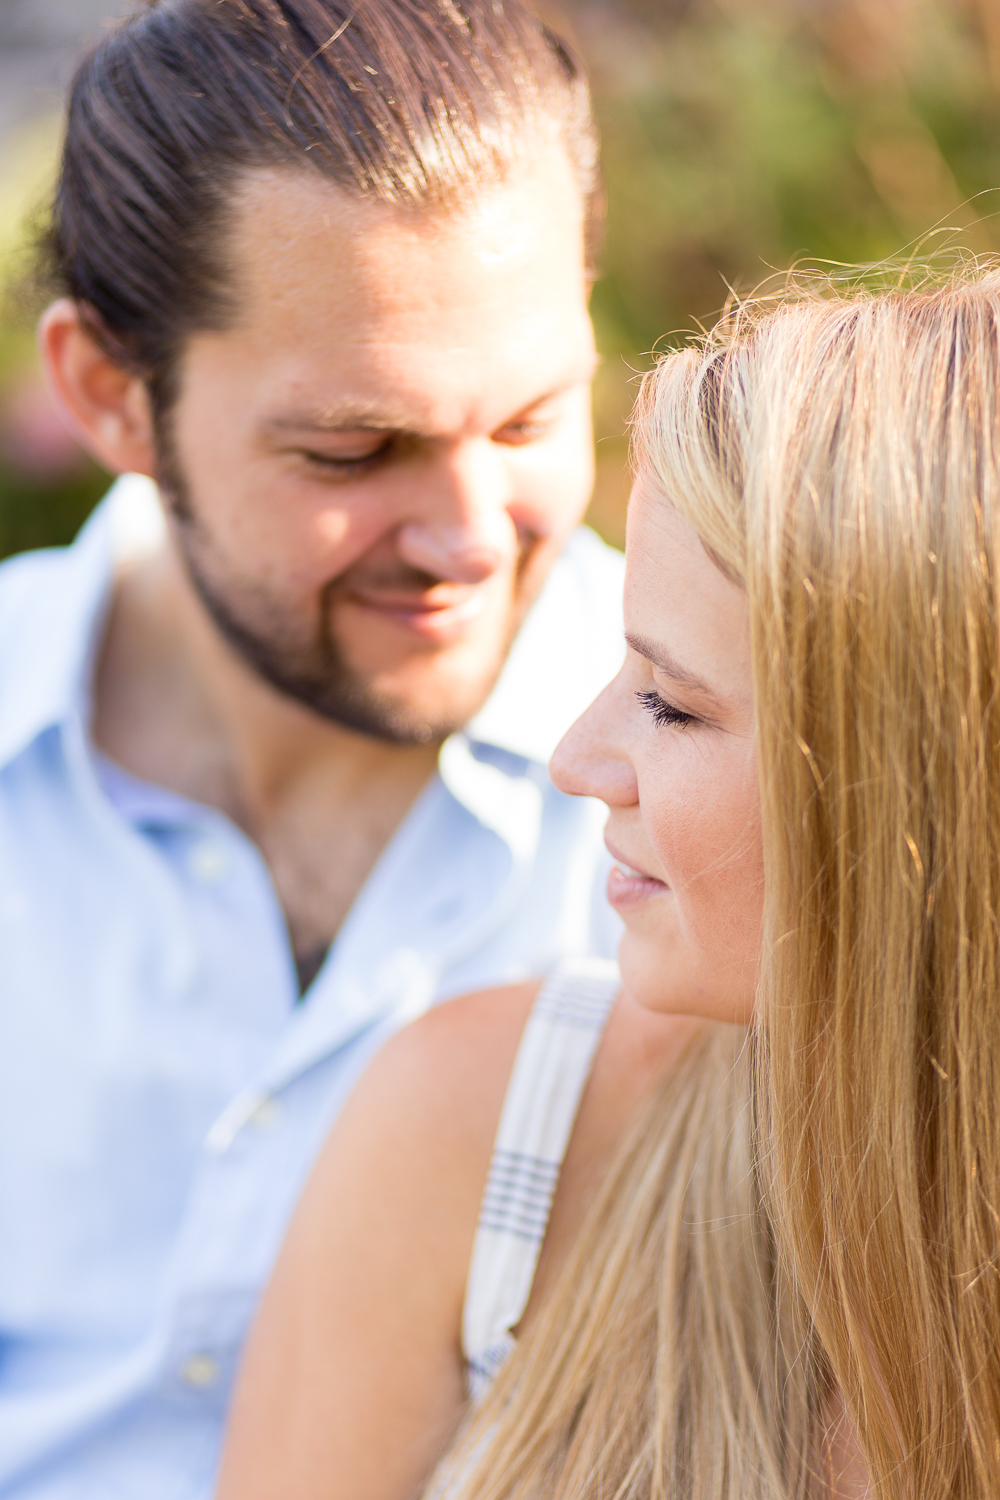 nyc-washington-square-casual-summer- engagement-session-7.jpg